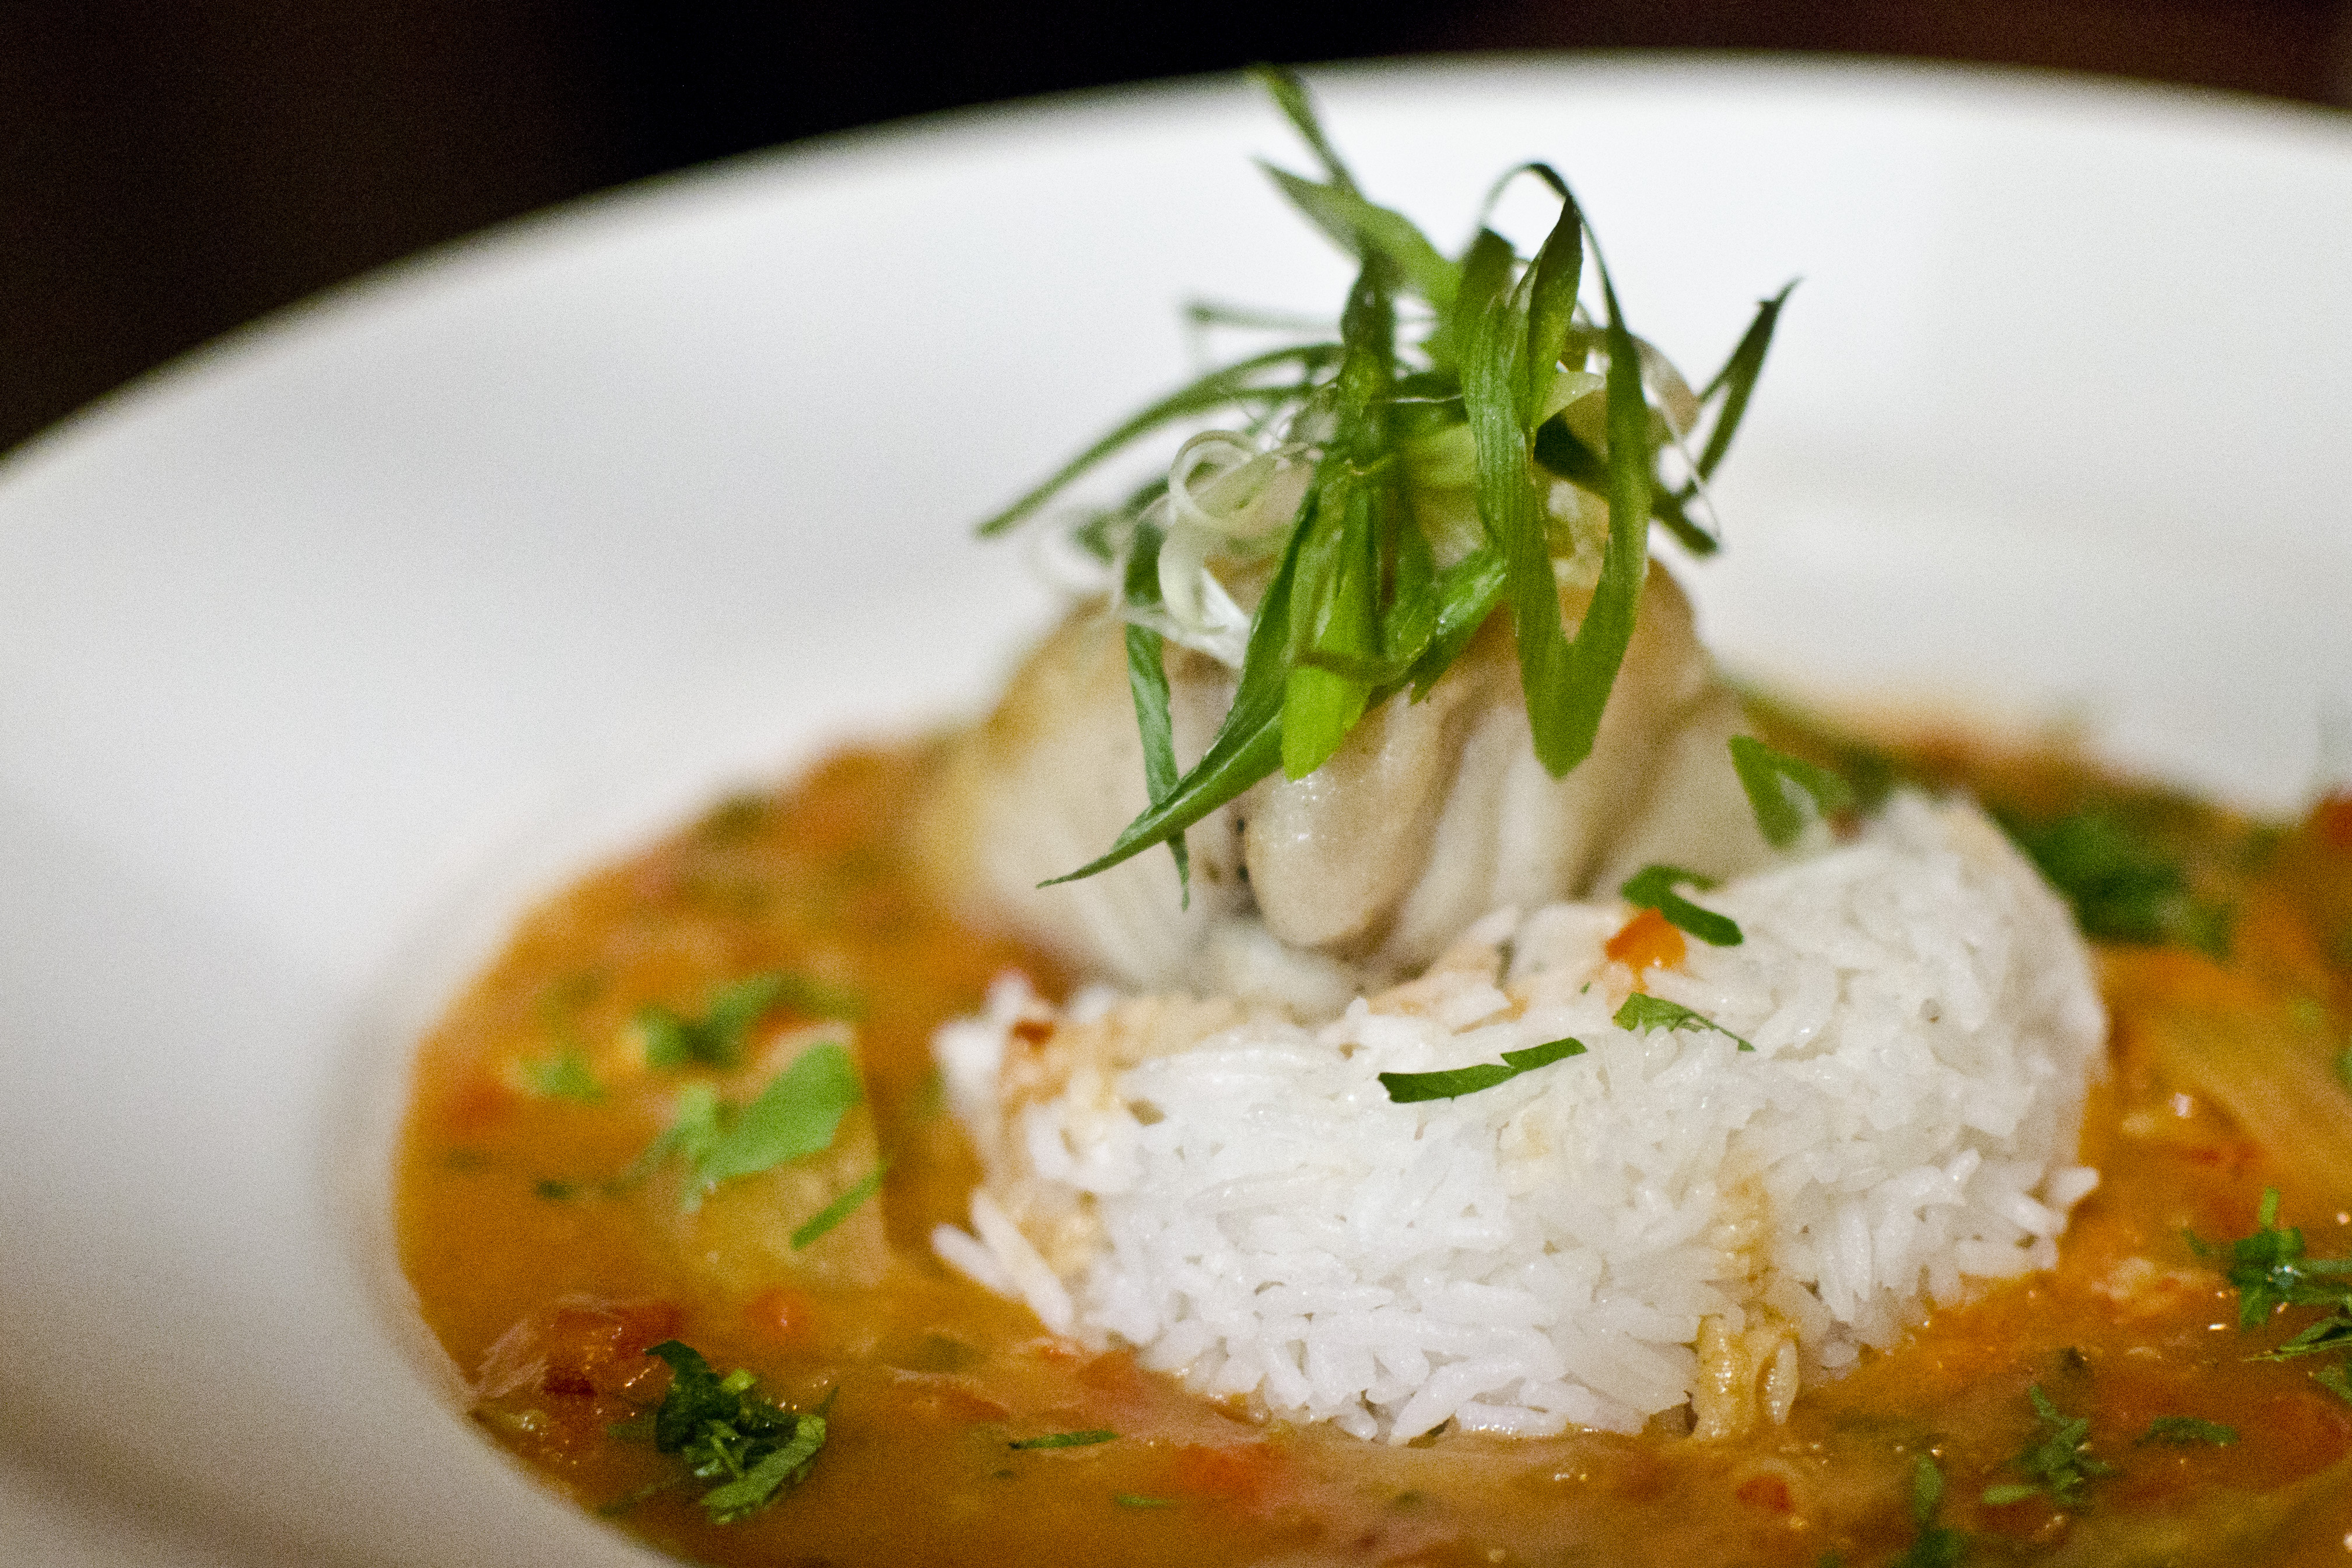 A filet of fish sits on white rice in a red broth, served on a white plate